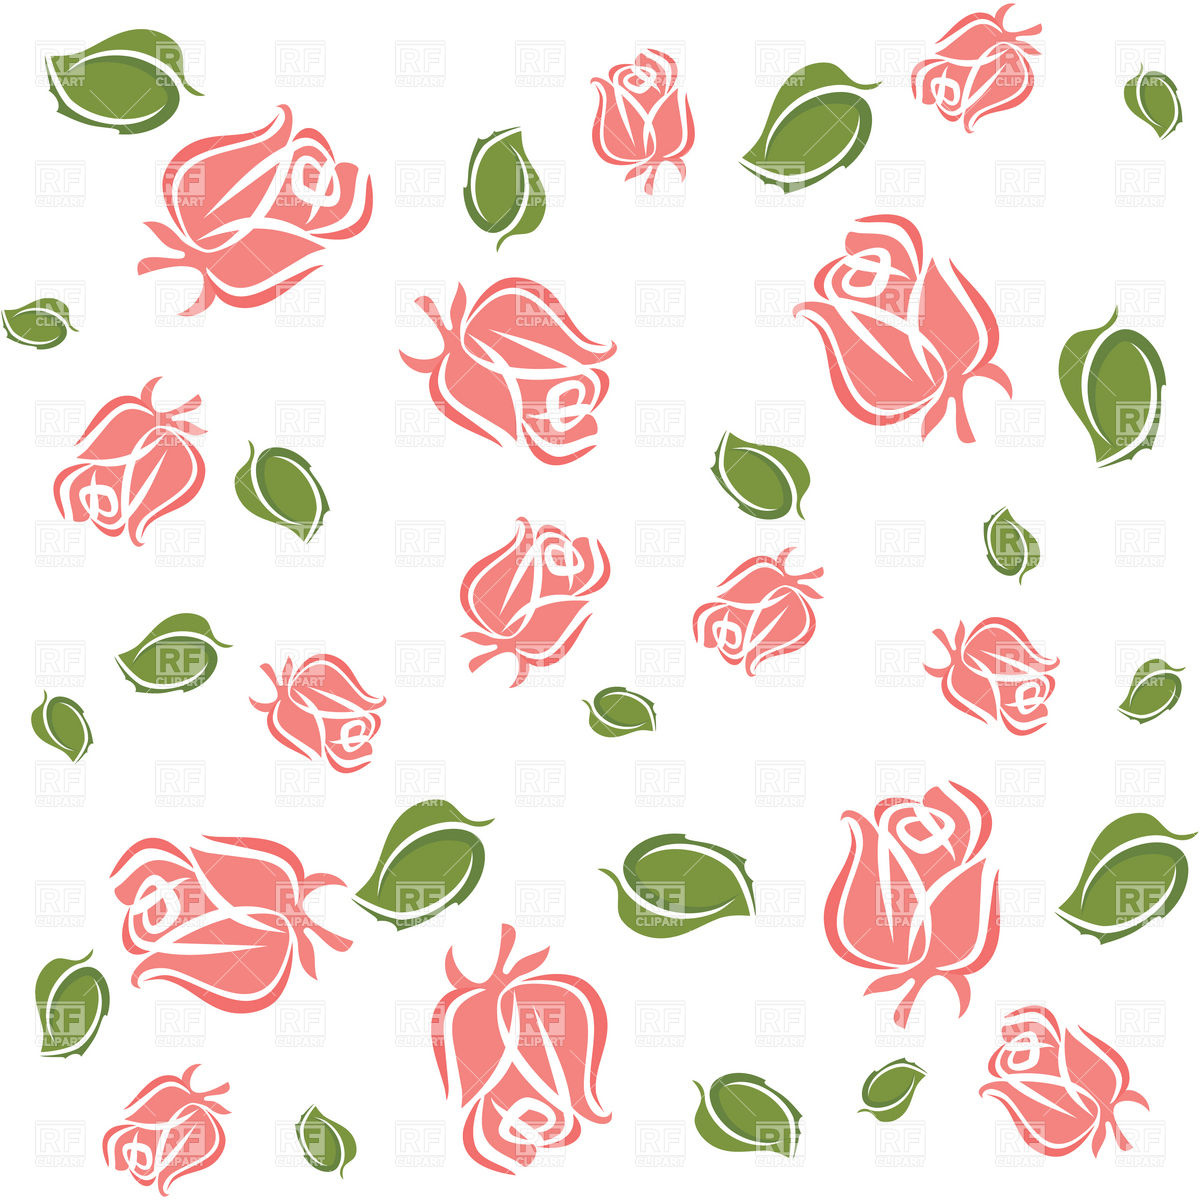 1200x1200 Wallpaper With Rose Buds And Leaves Vector Image Vector Artwork